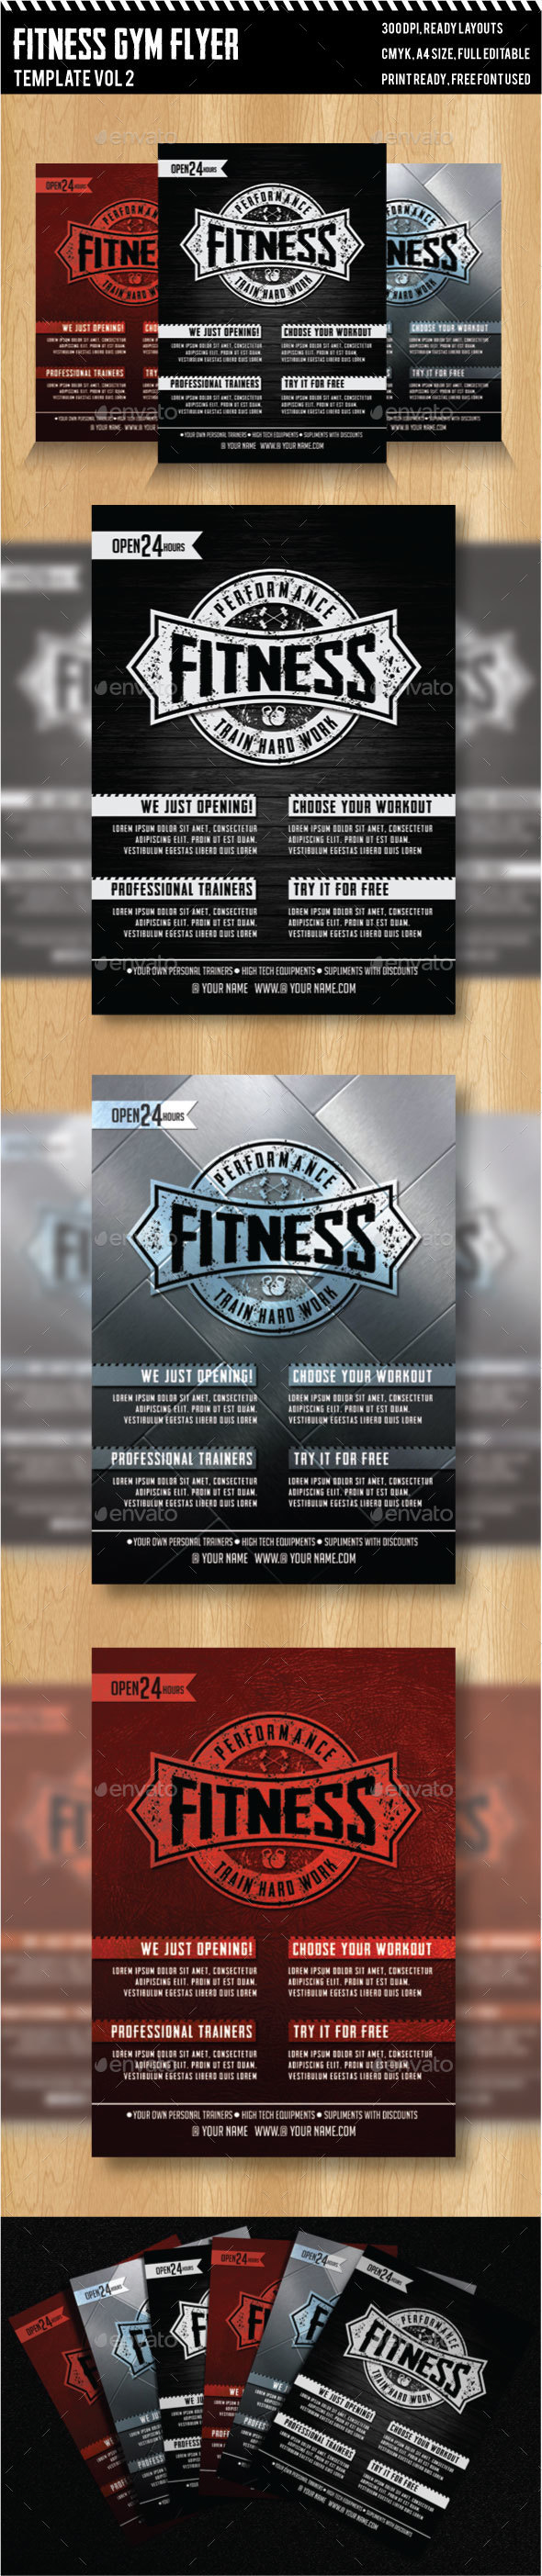 Fitness - Gym Flyer Templates